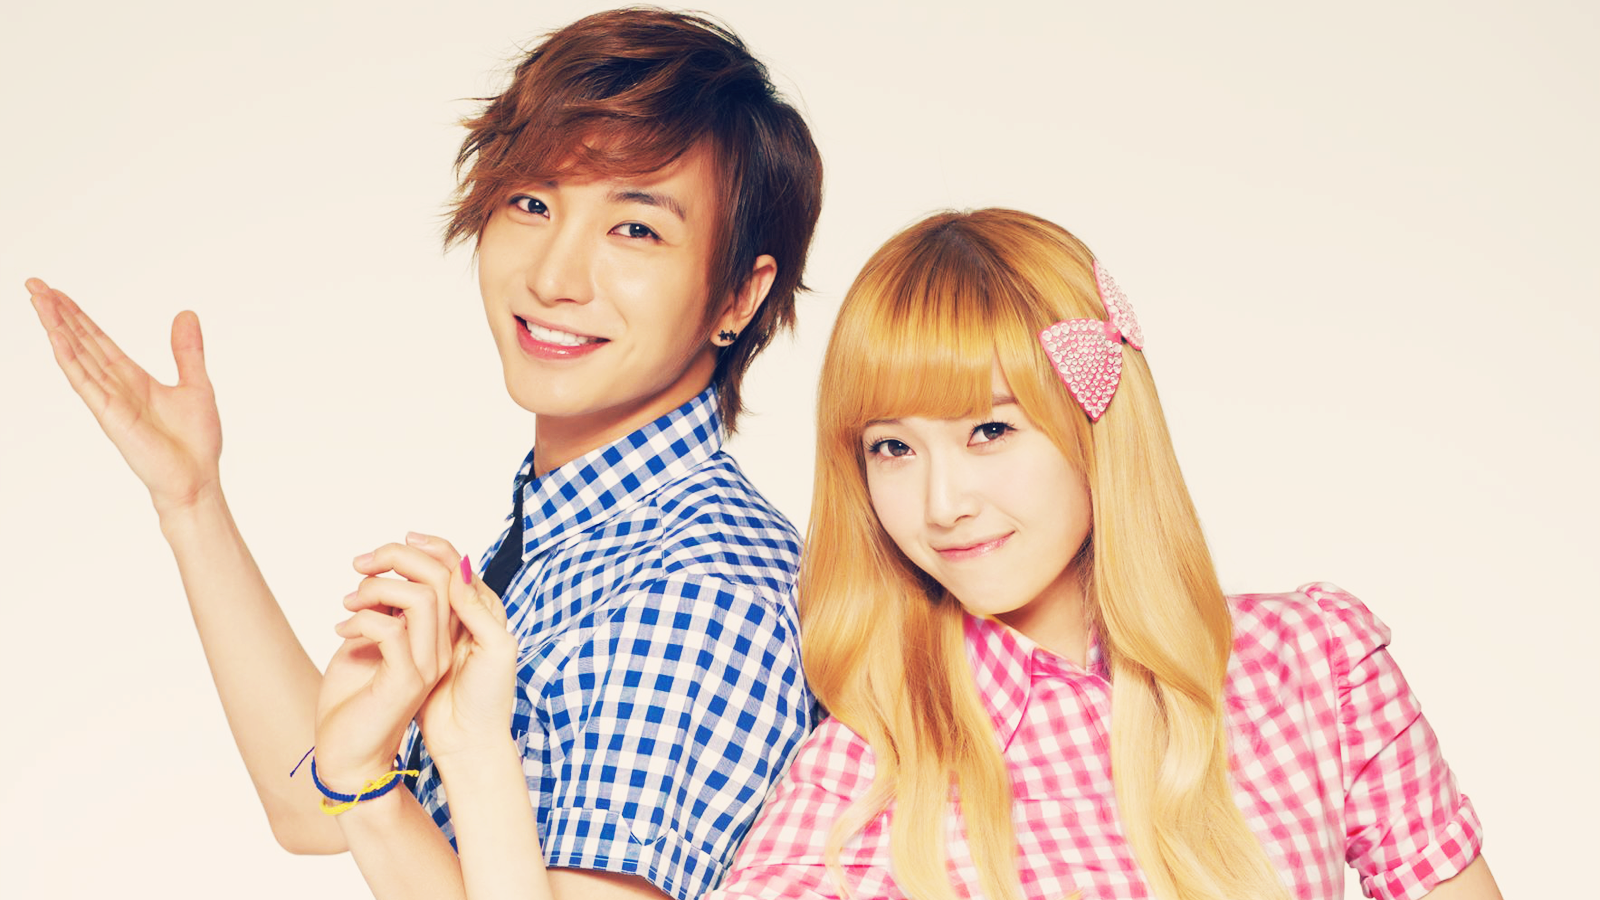 Kpop images Leeteuk & Jessica HD wallpaper and background